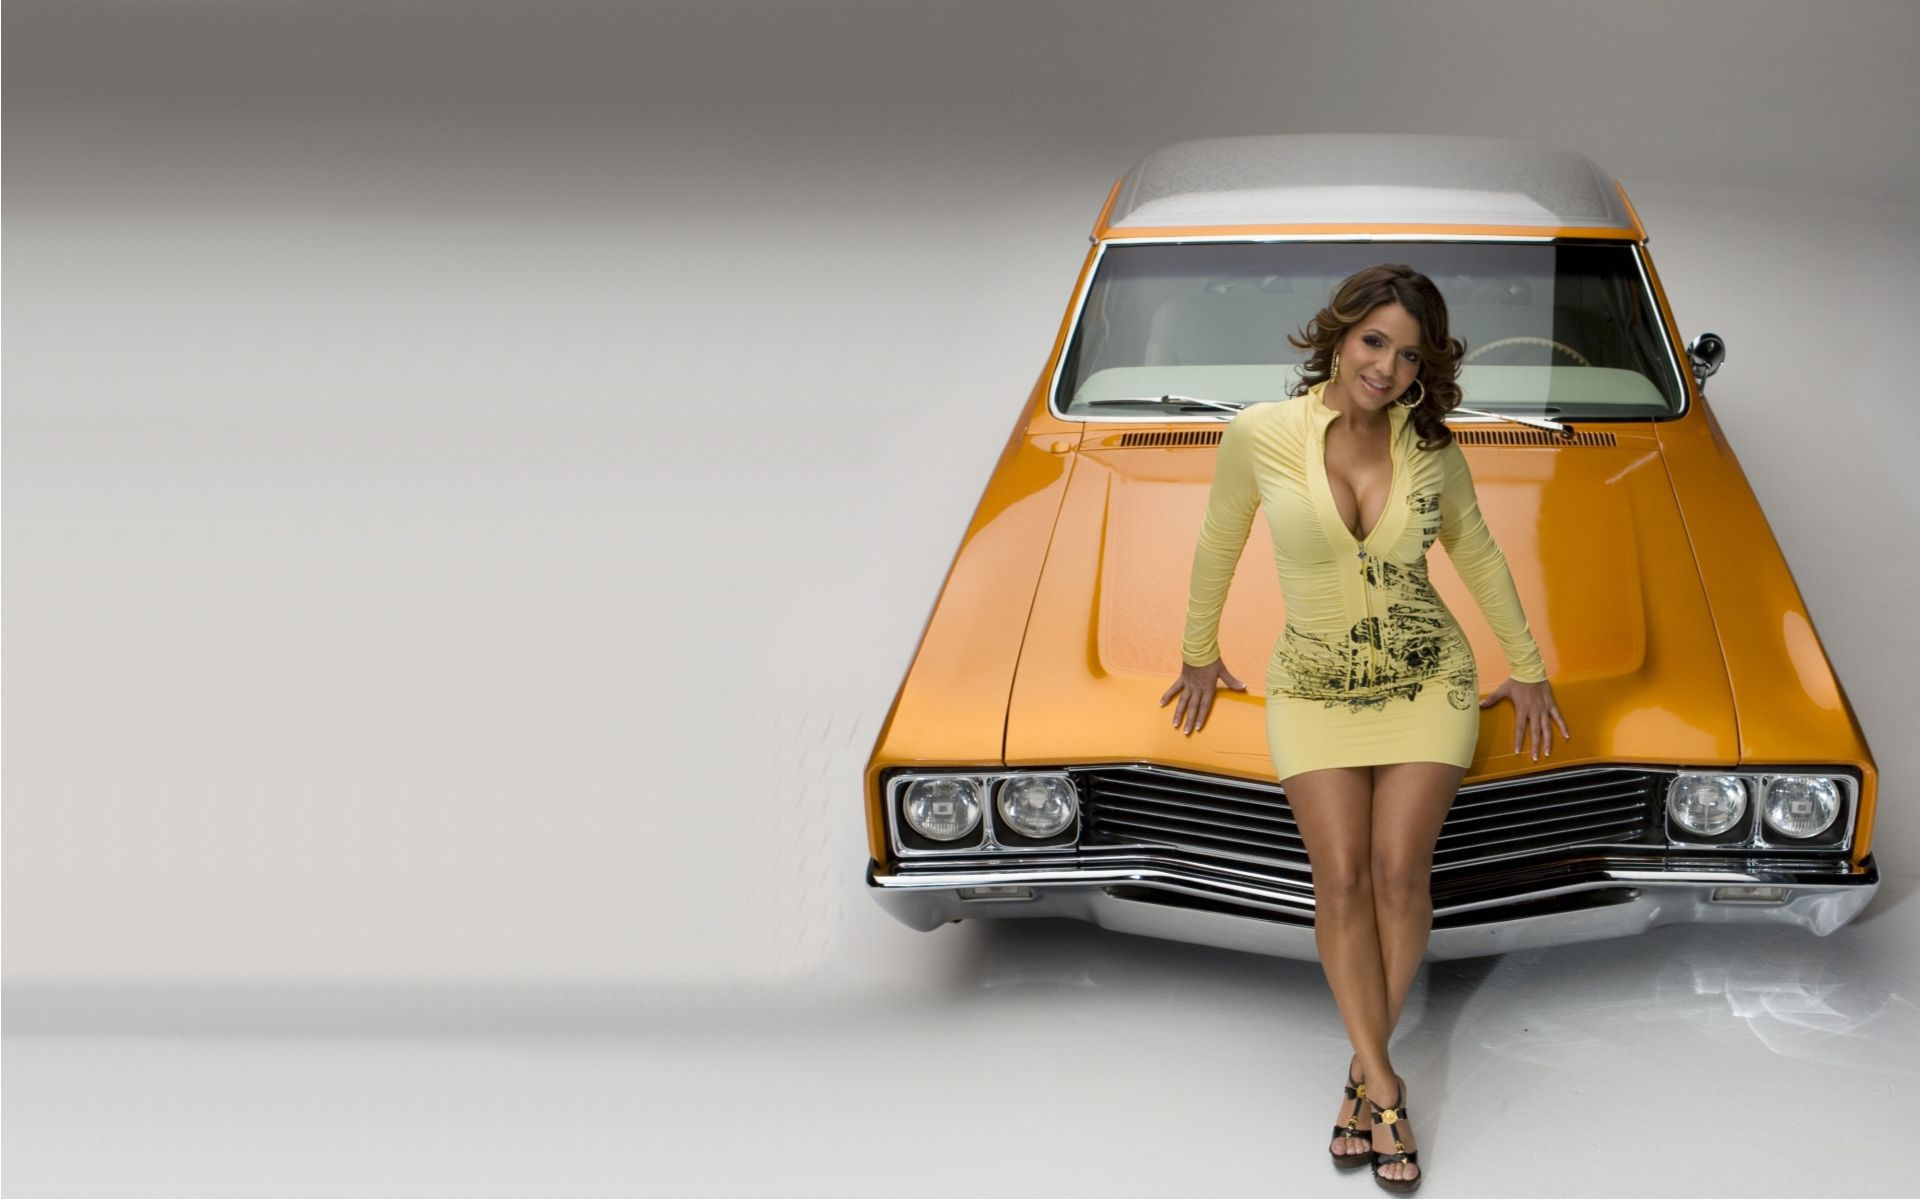 Girls And Lowrider Wallpaper Pic Vida Guerra Wallpapers Backgrounds